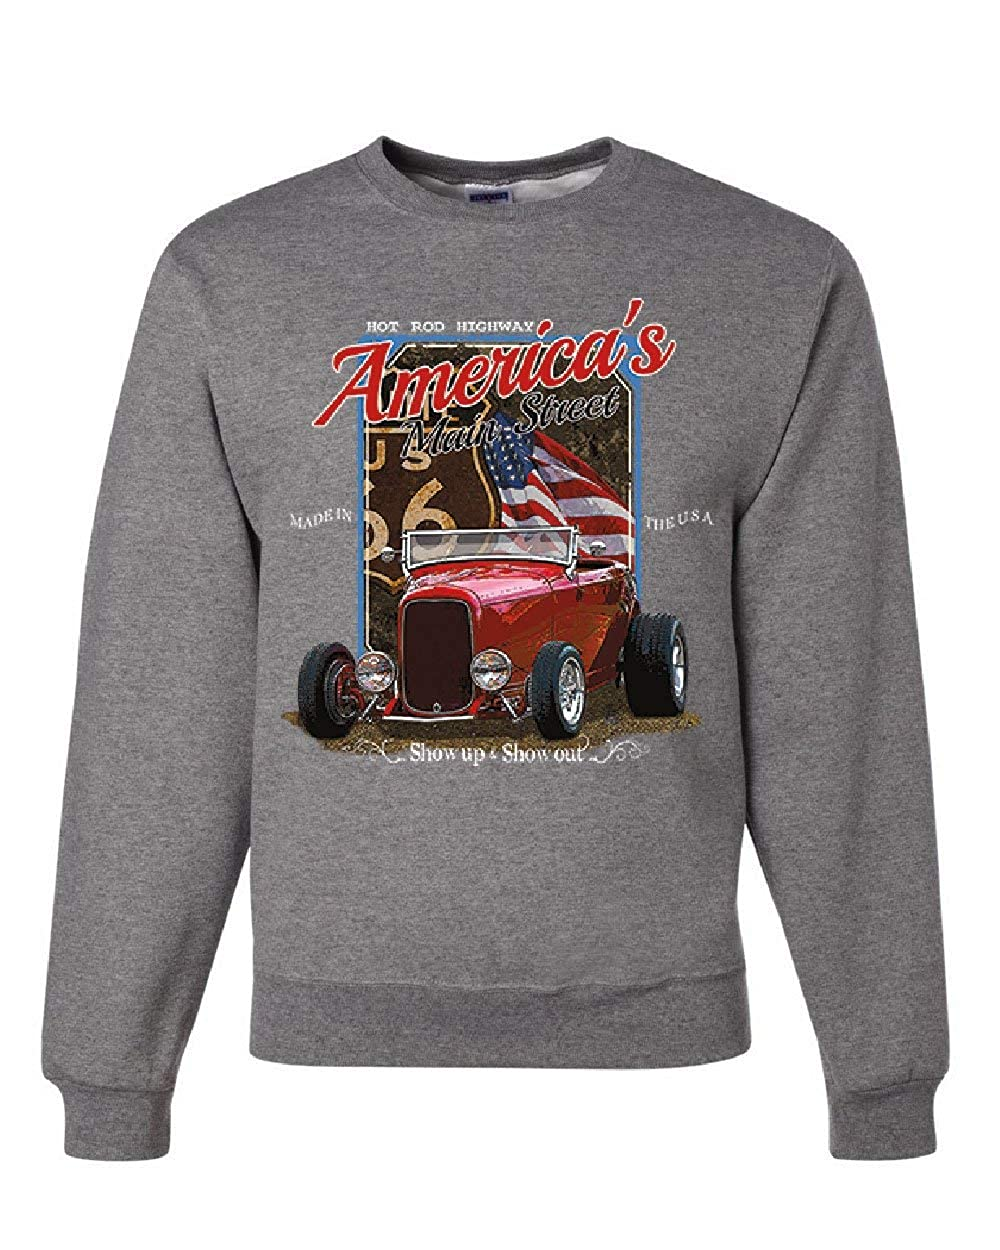 Hot Rod Highway Route 66 Sweatshirt Americas Main Street Vintage Sweater